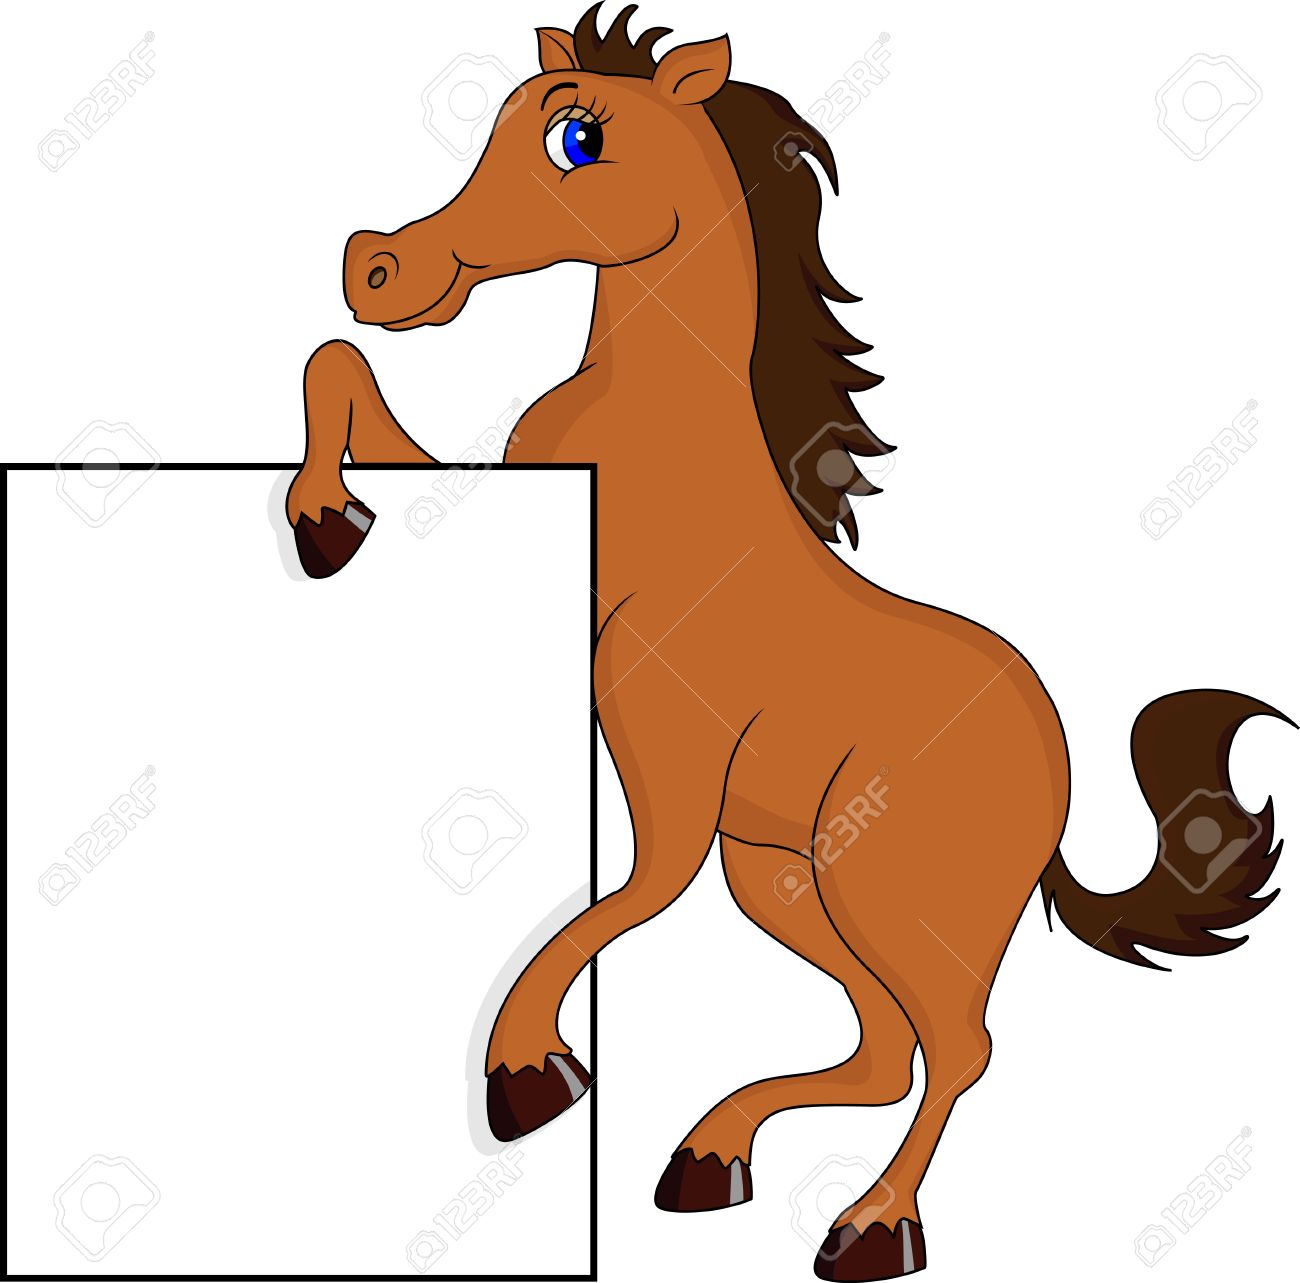 Funny Horse Cartoon With Blank Sign Royalty Free Cliparts Vectors And Stock Illustration Image 23513307